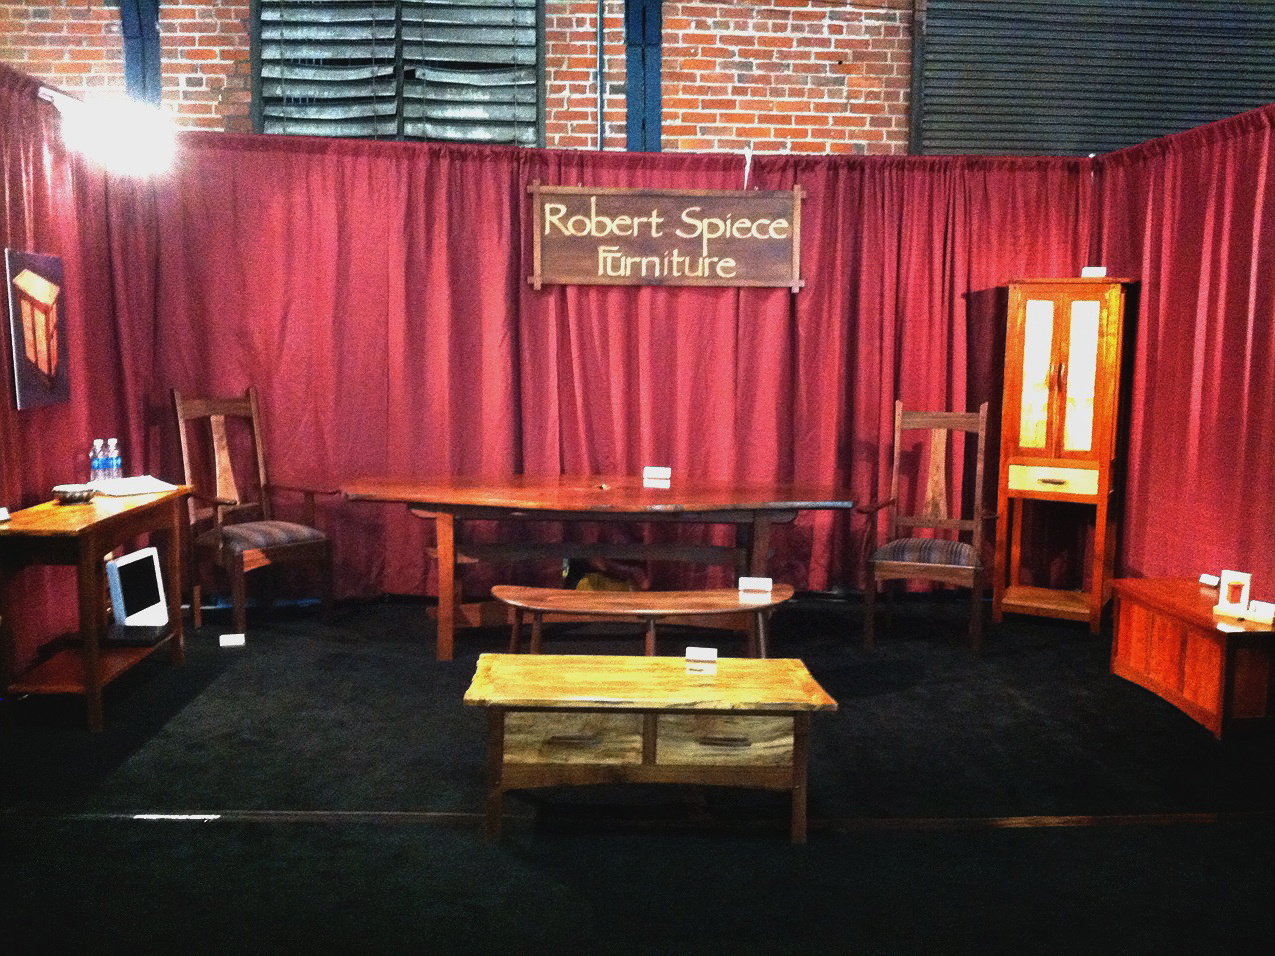 ... of a Woodworking Apprentice: Philadelphia Furniture Show 2013